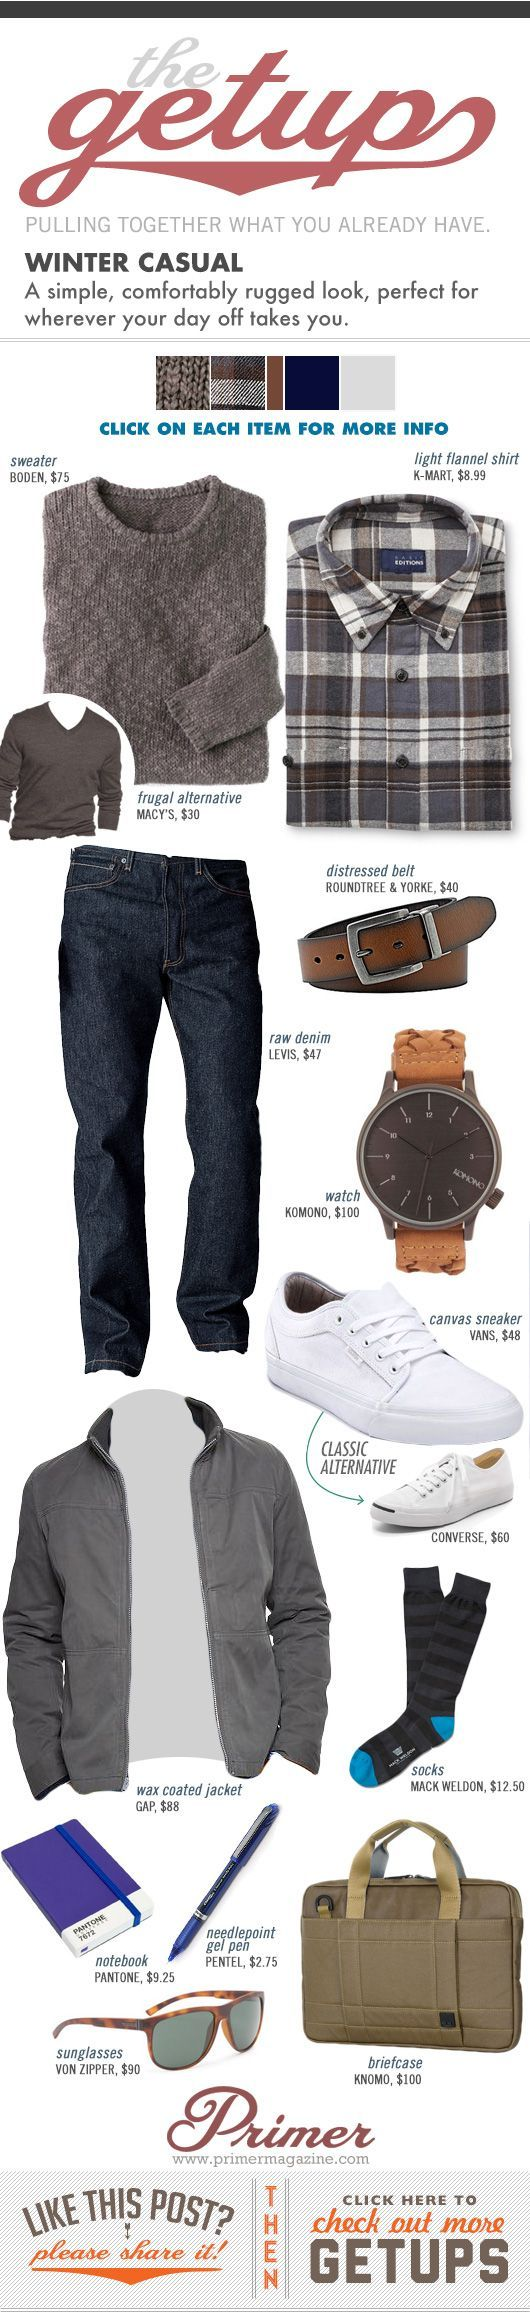 The Getup - Winter Casual